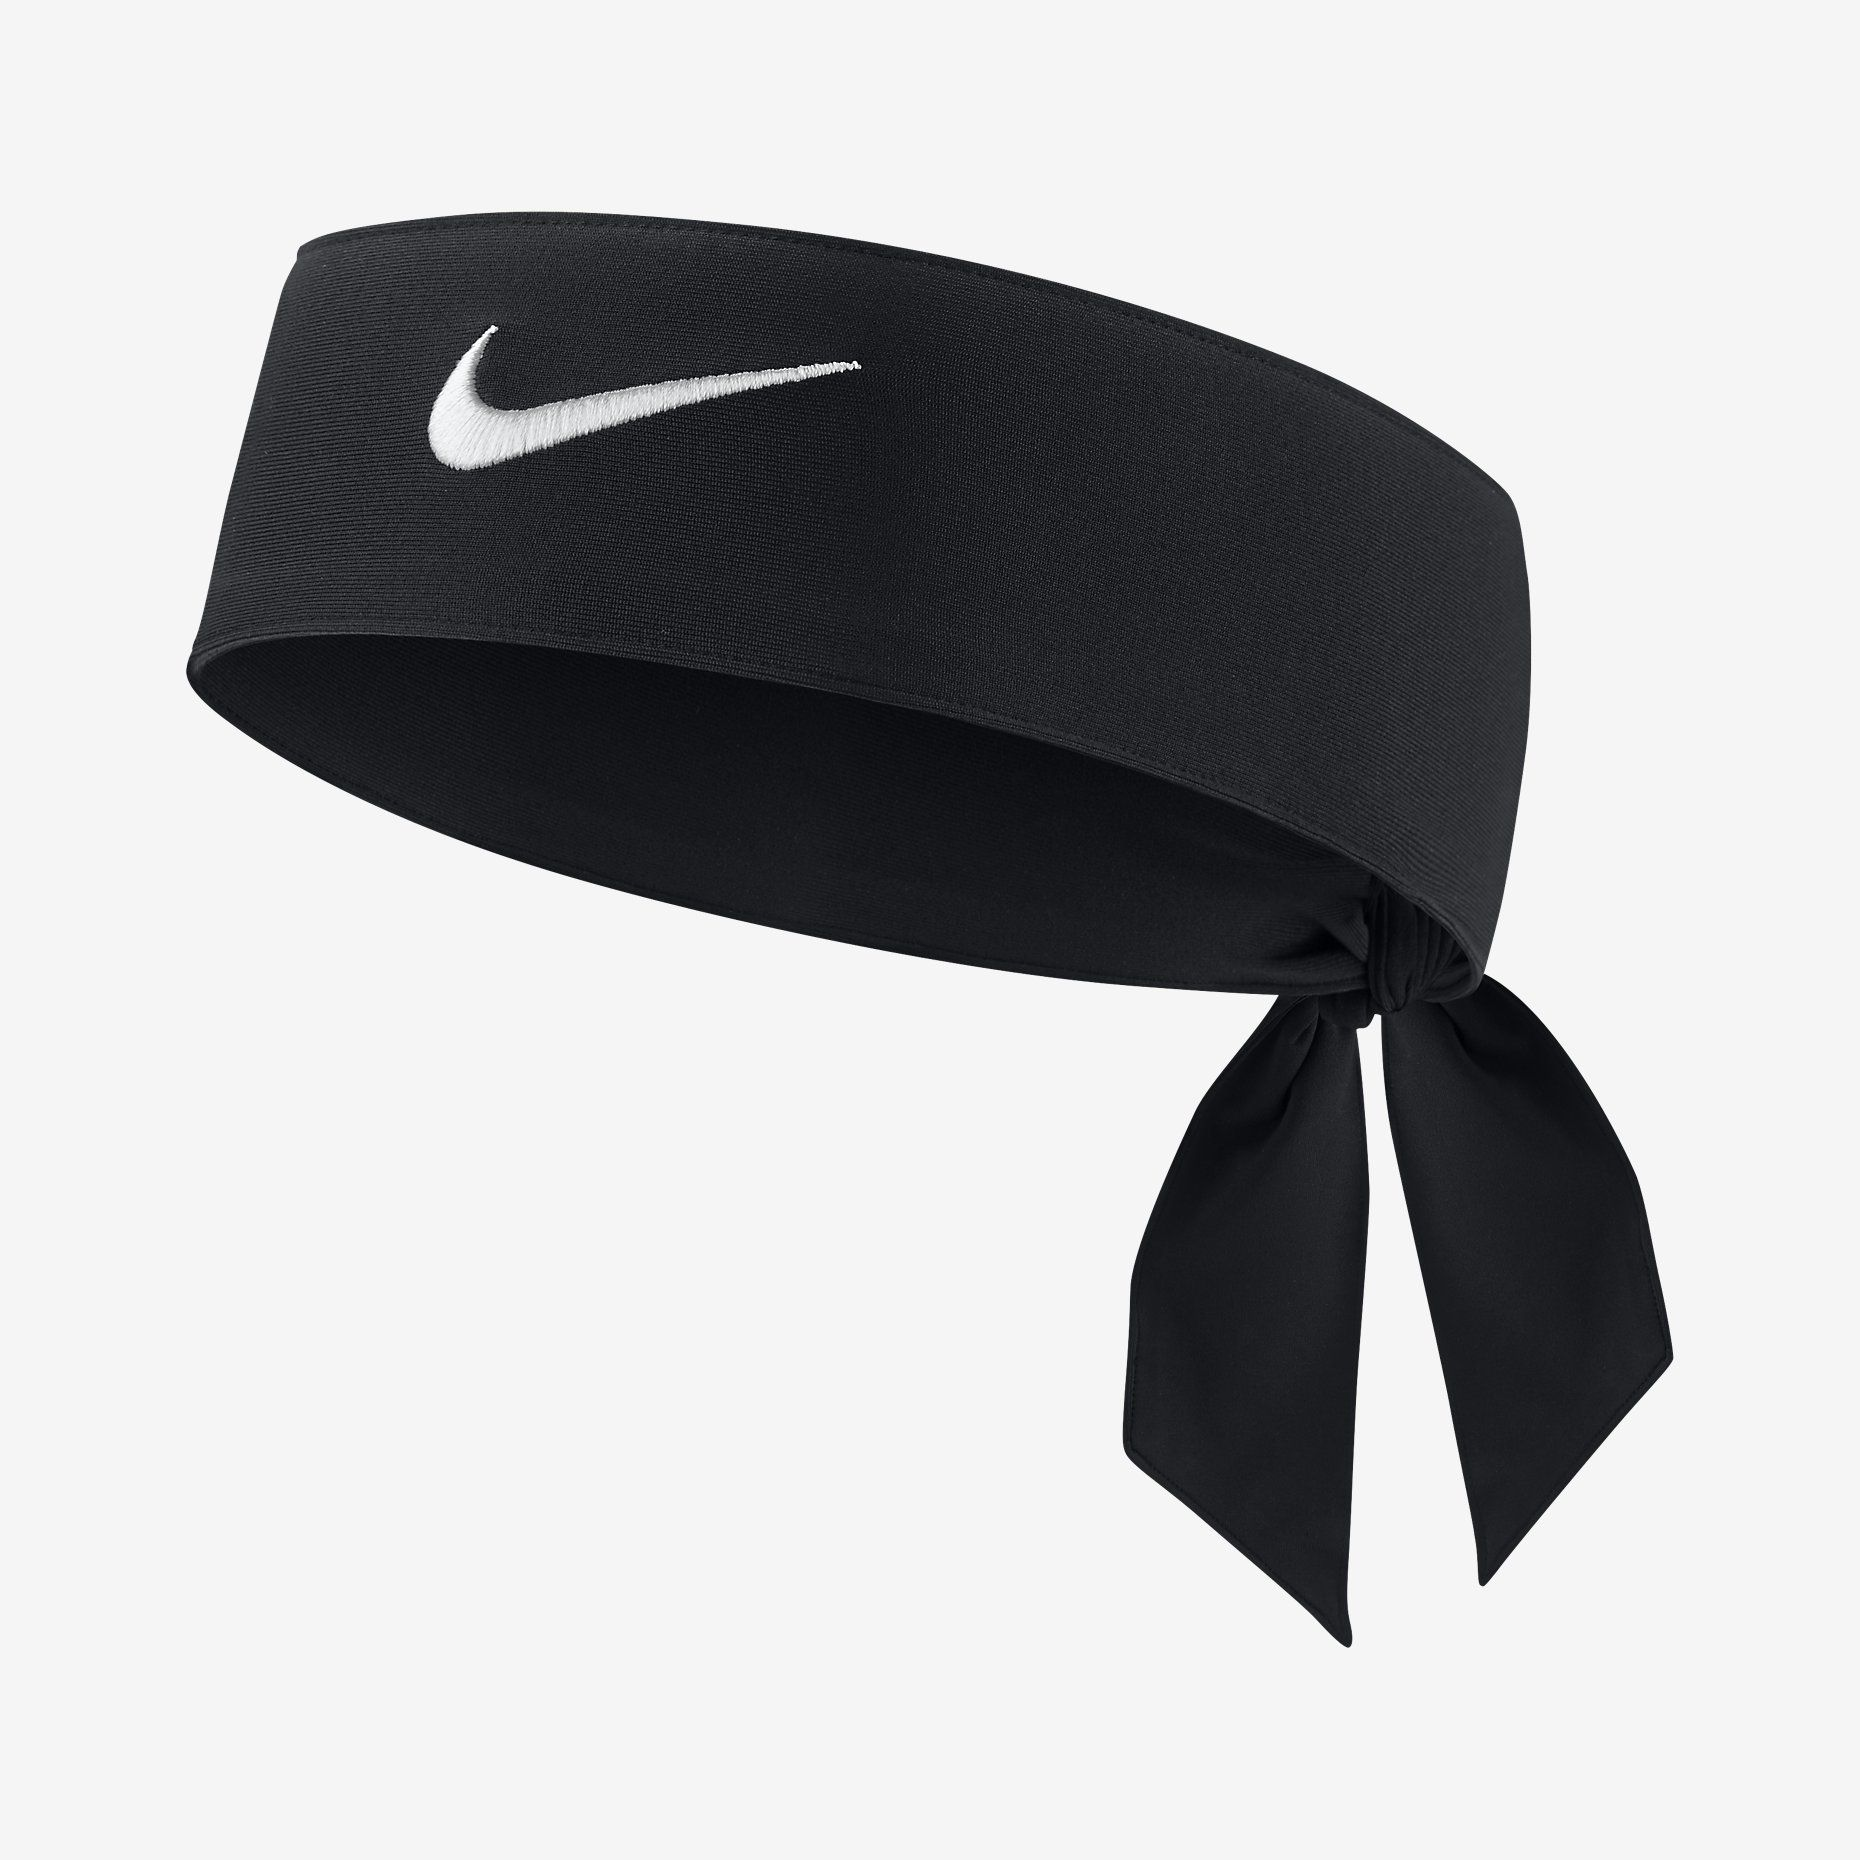 Nike Dri Fit 2 0 Head Tie Nike Store Uk Nike Headbands Nike Dri Fit Headband Head Ties